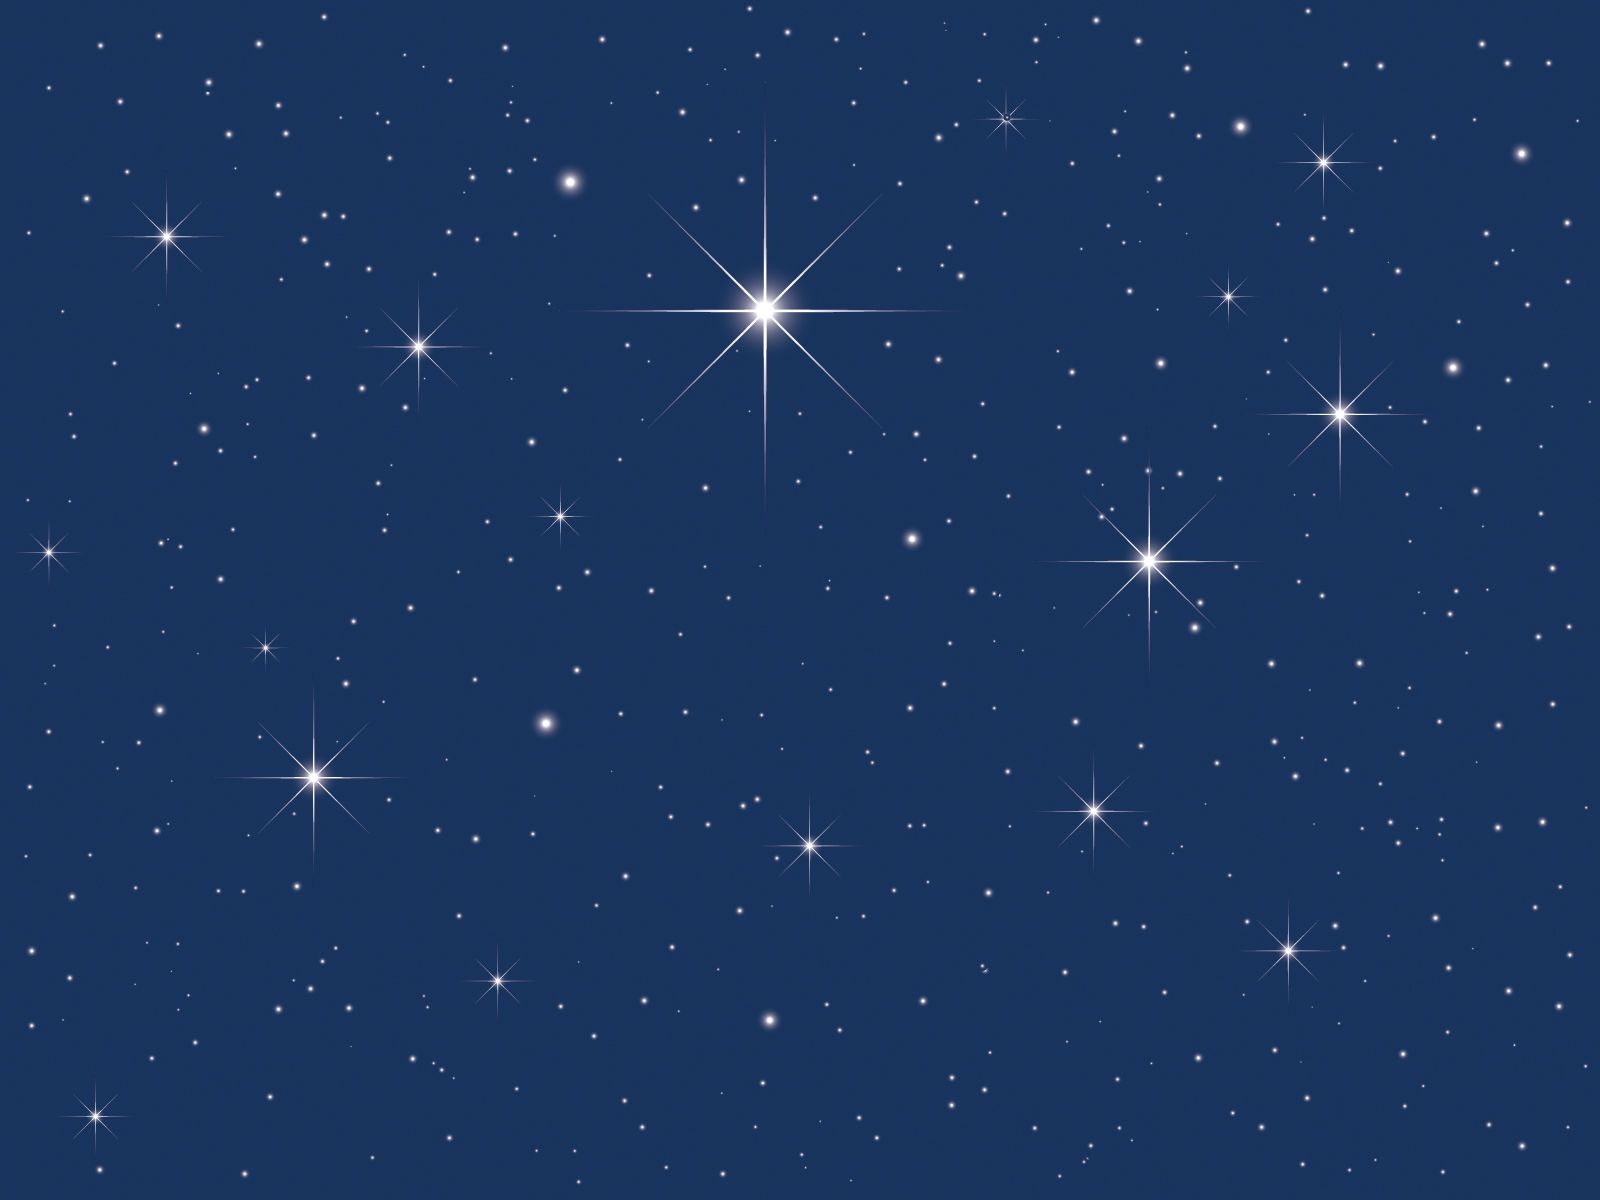 Starry Sky Clipart #1.